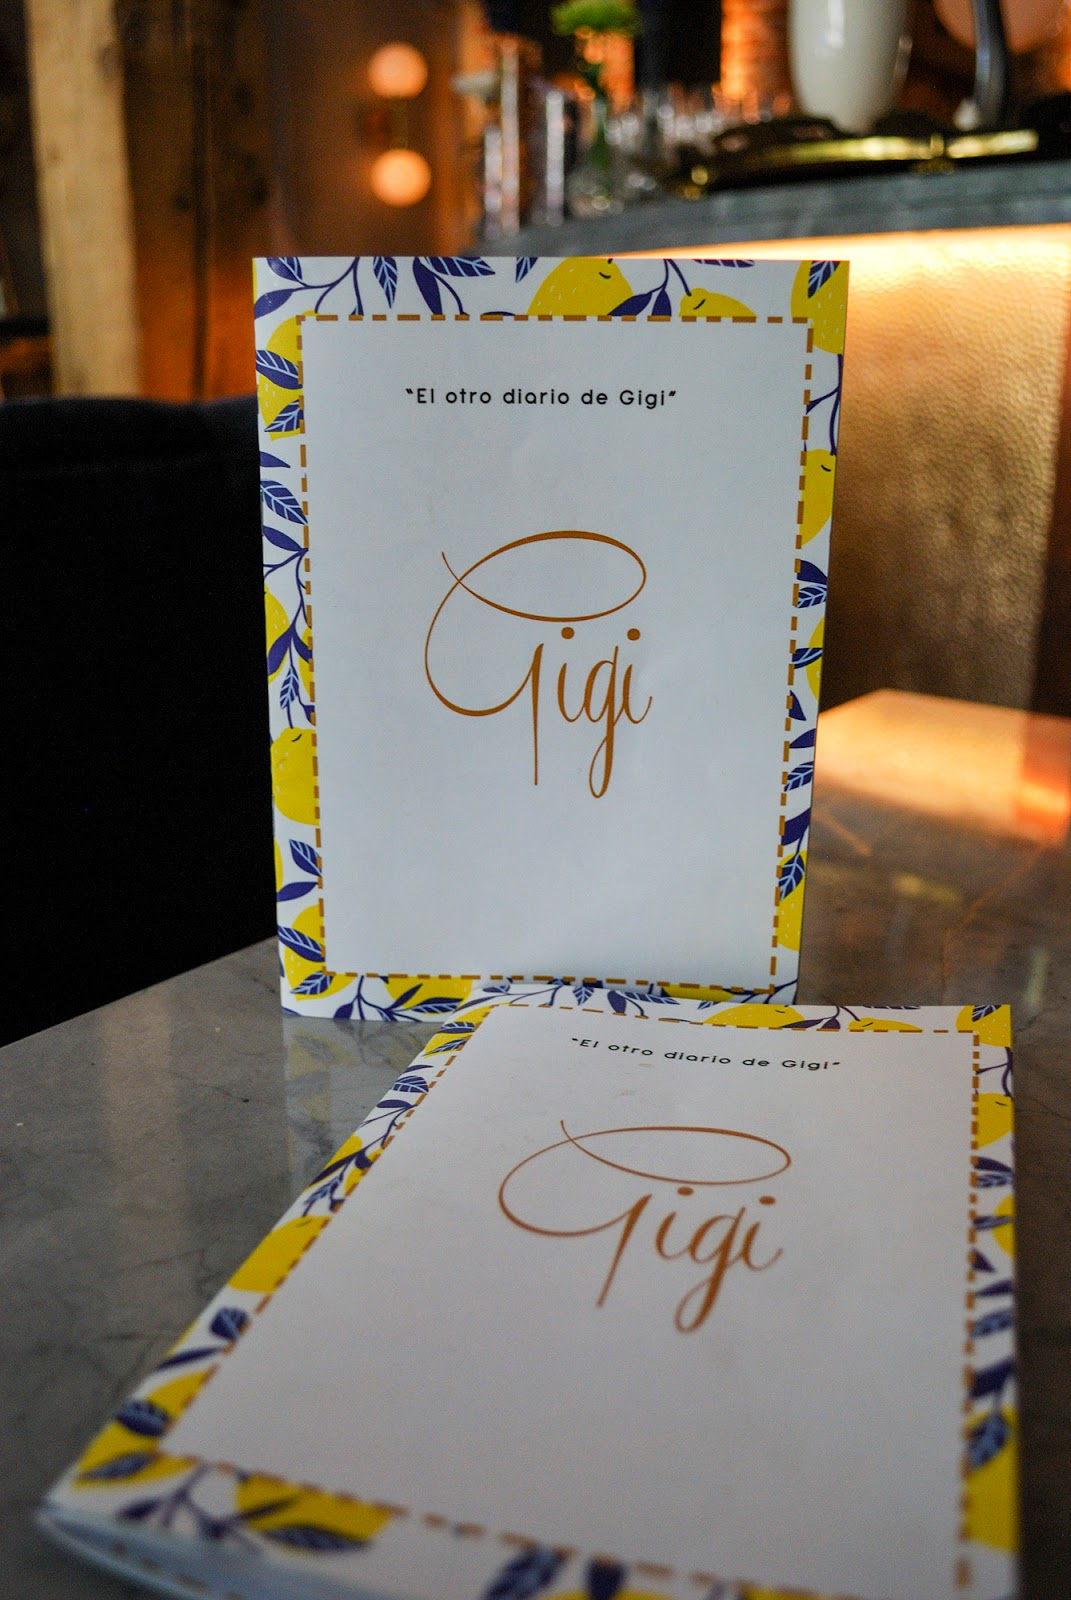 gigi romantic restaurant chamberi luchana madrid